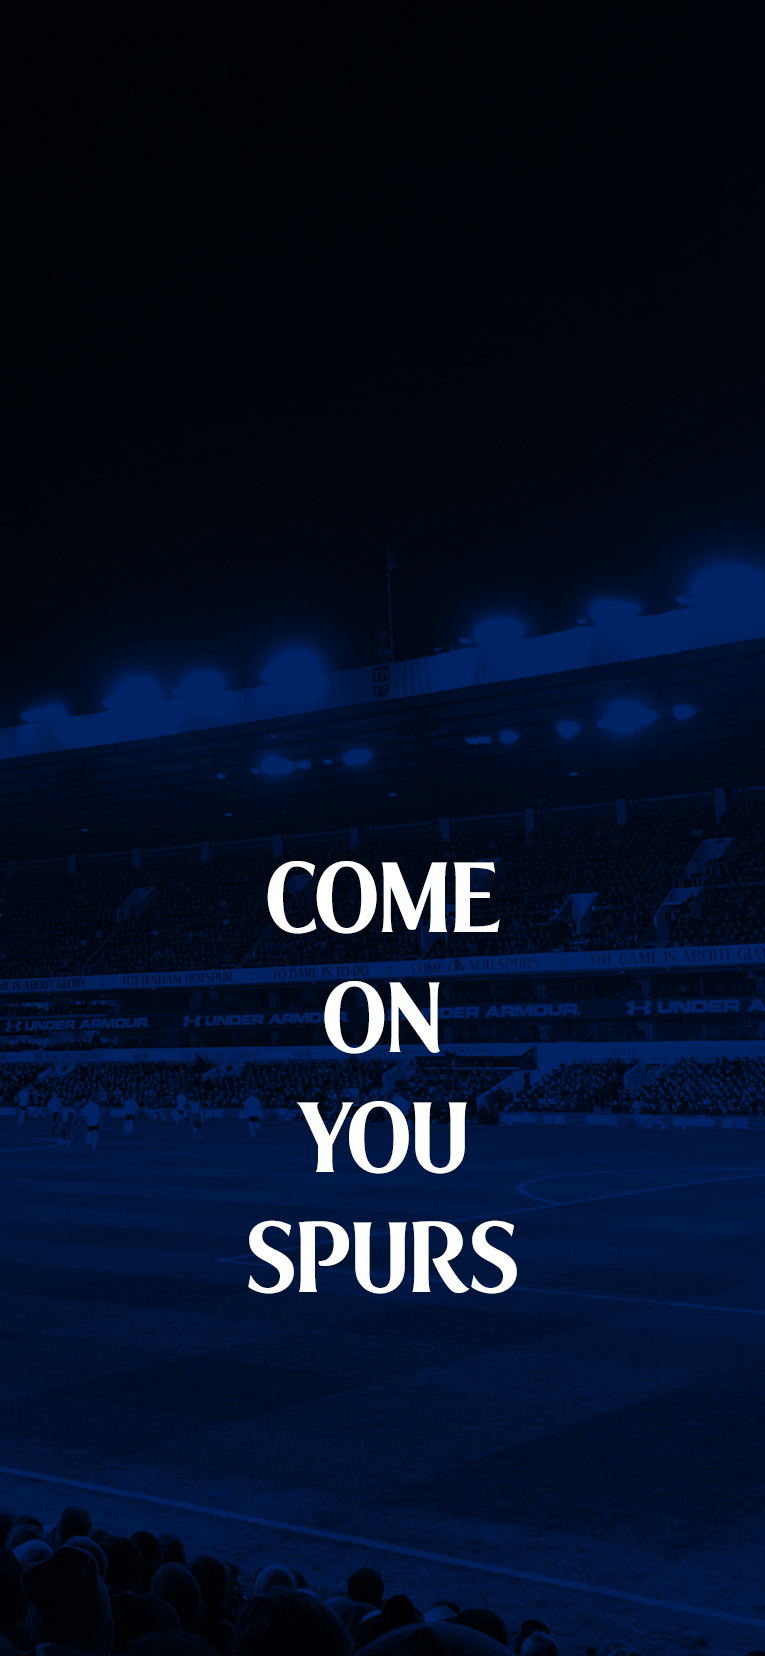 Come On You Spurs Wallpaper For Iphone X By Mevlutats On Deviantart